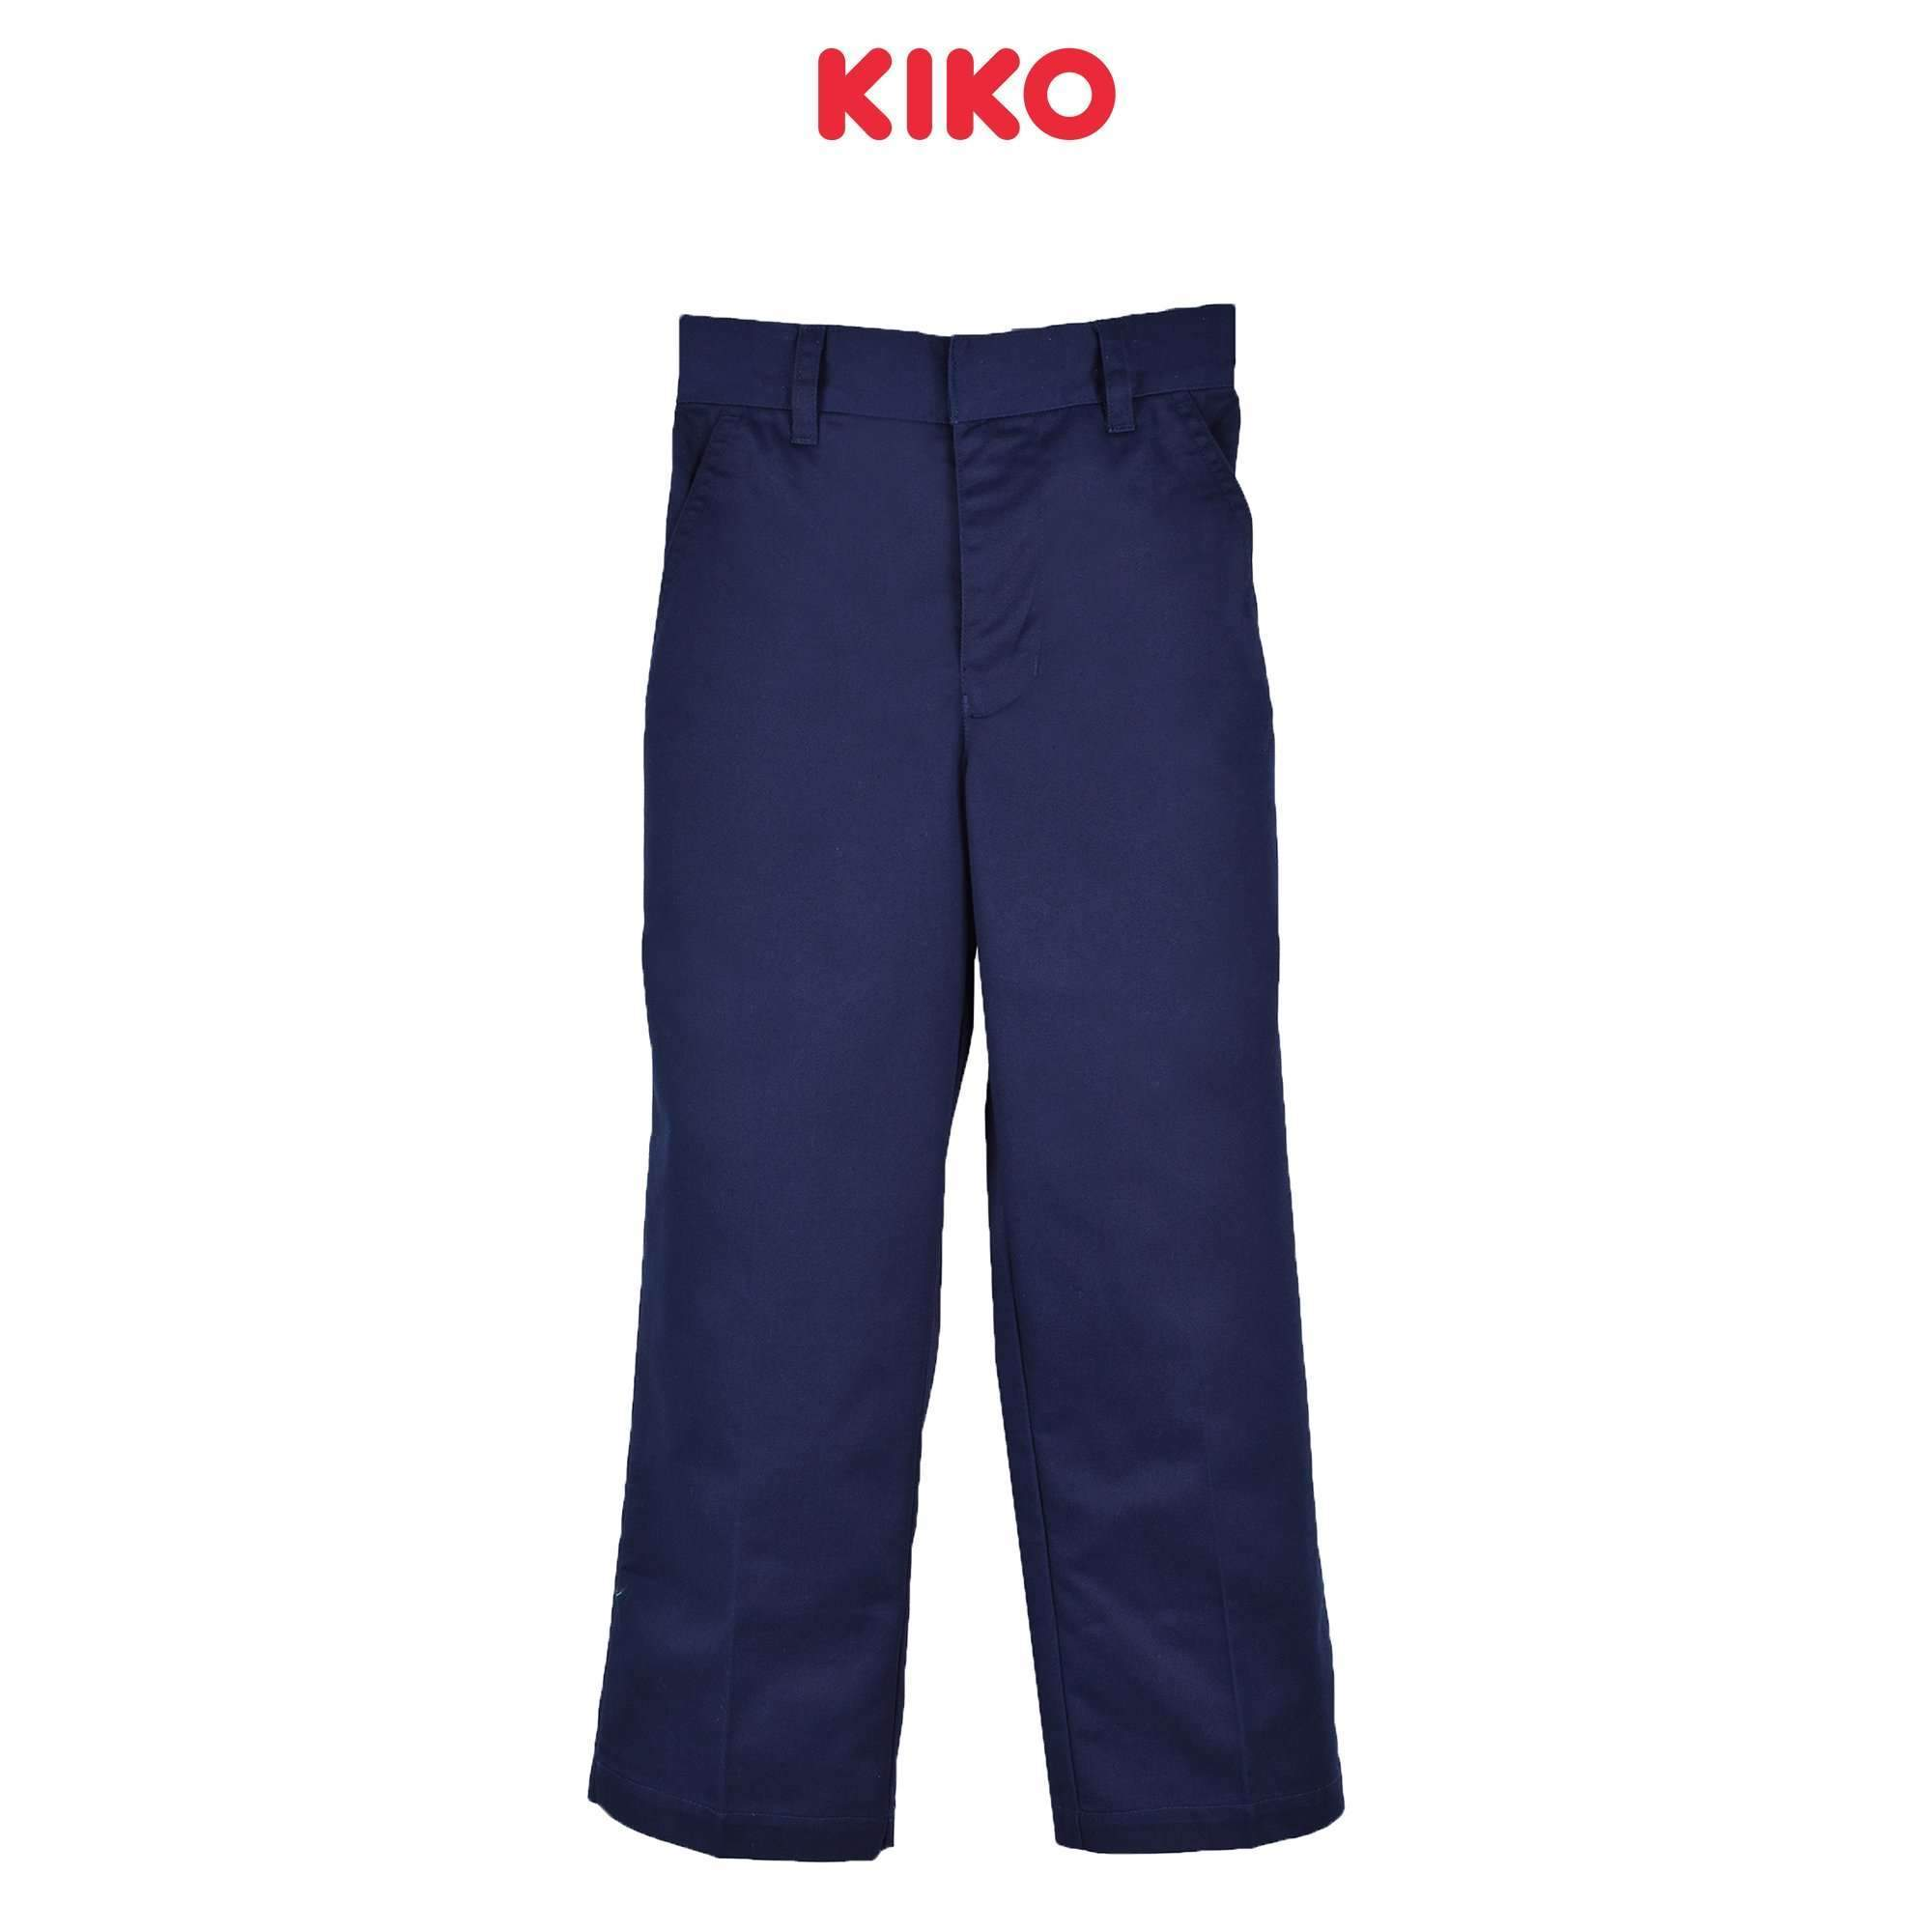 K-Primary Boy Long Pants School Uniform Primary - Navy 121033-25X : Buy K-Primary online at CMG.MY